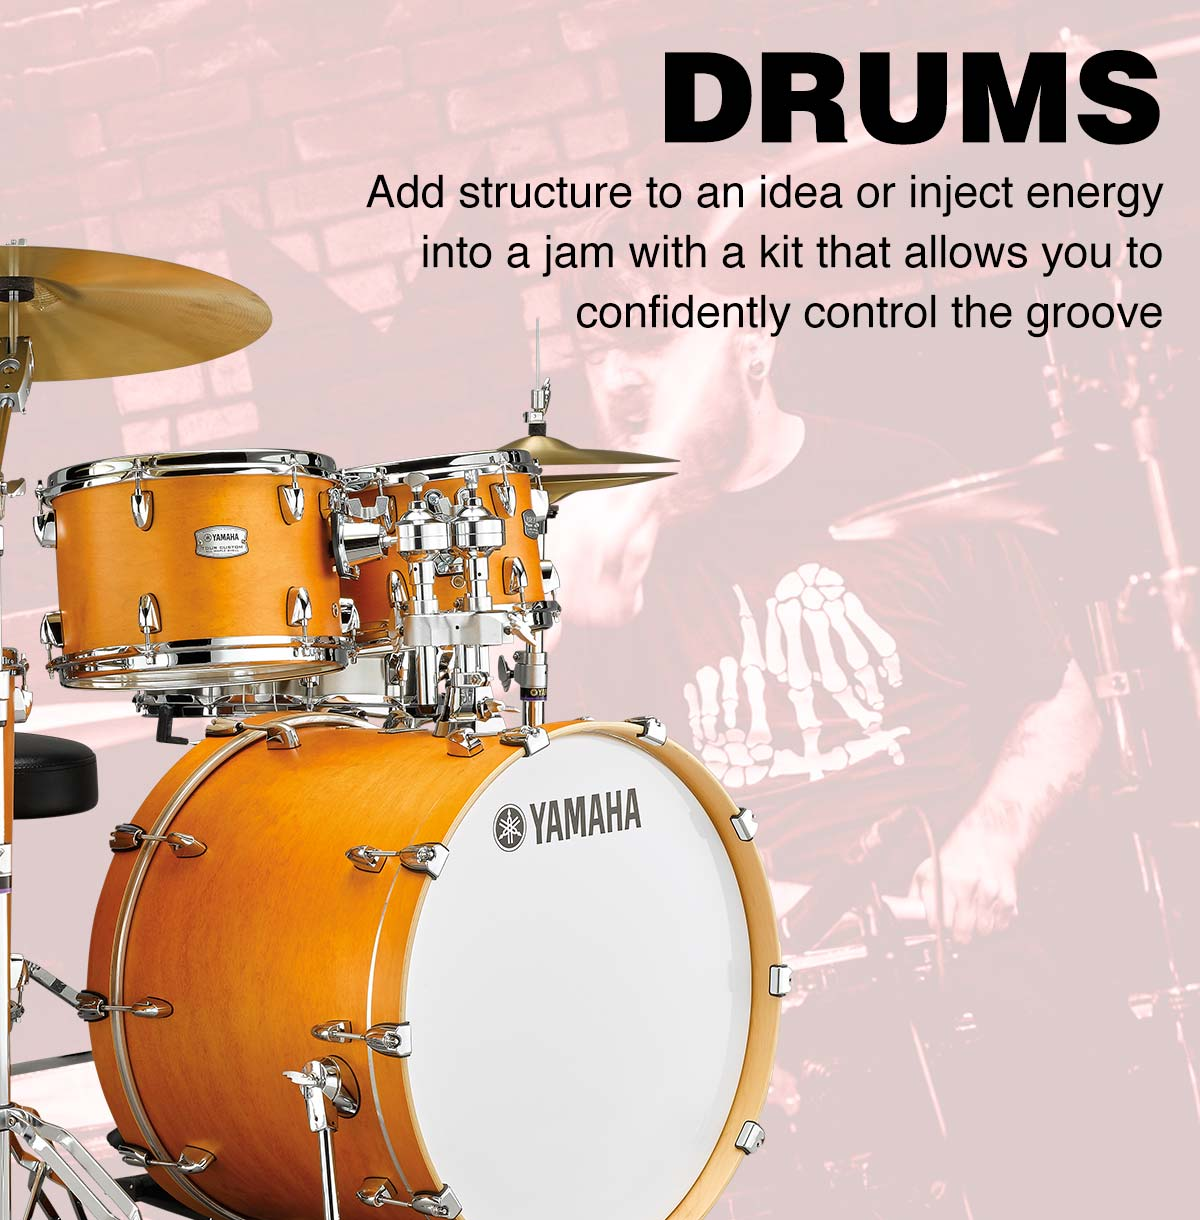 Drums. Add structure to an idea or inject energy into a jam with a kit that allows you to confidently control the groove.